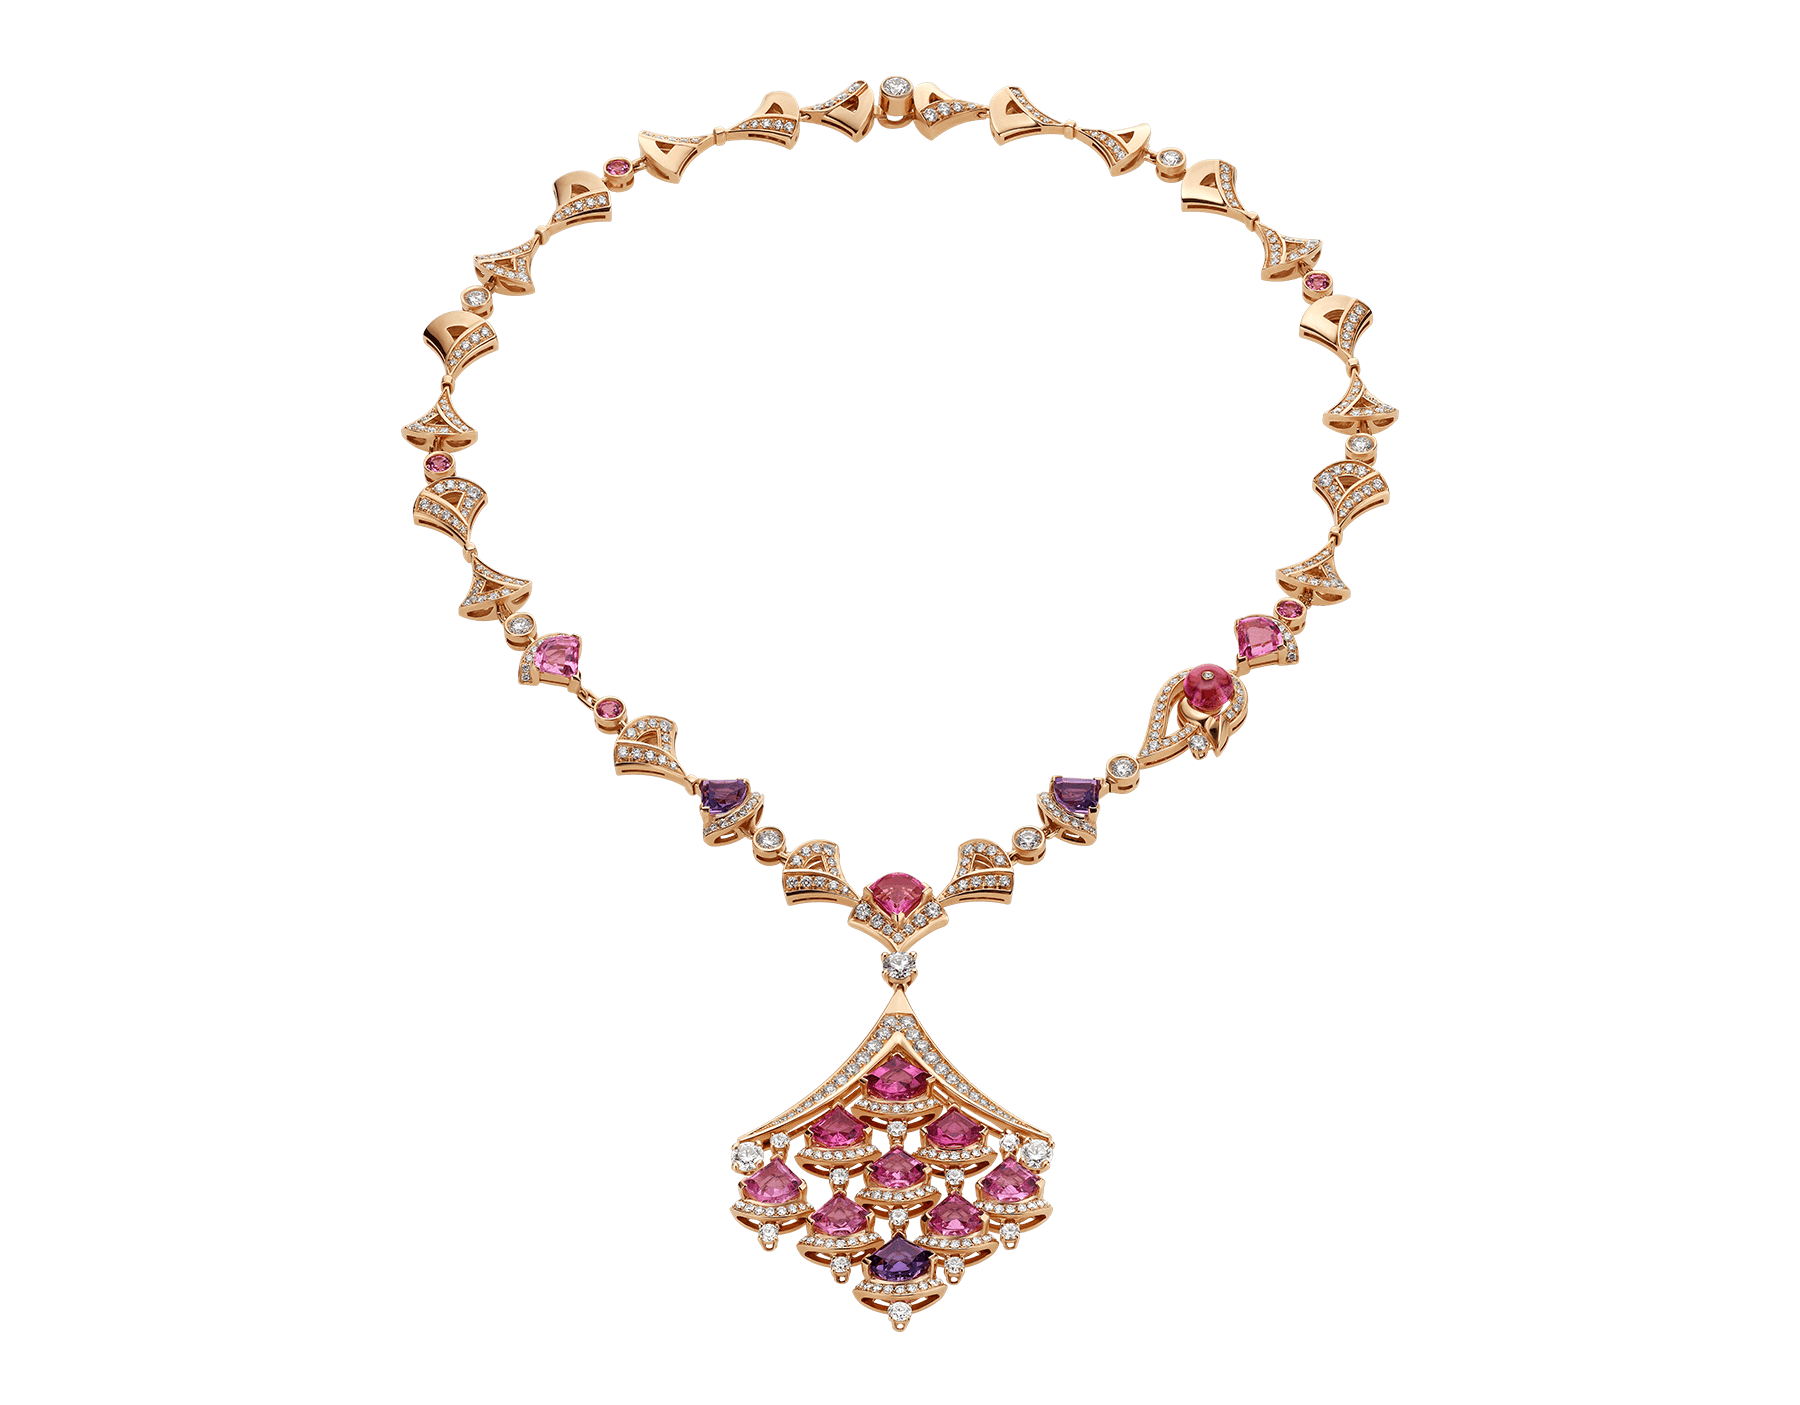 DIVAS' DREAM necklace in 18 kt rose gold, set with pink rubellite, pink tourmaline amethysts and pavé diamonds. 354074 image 1